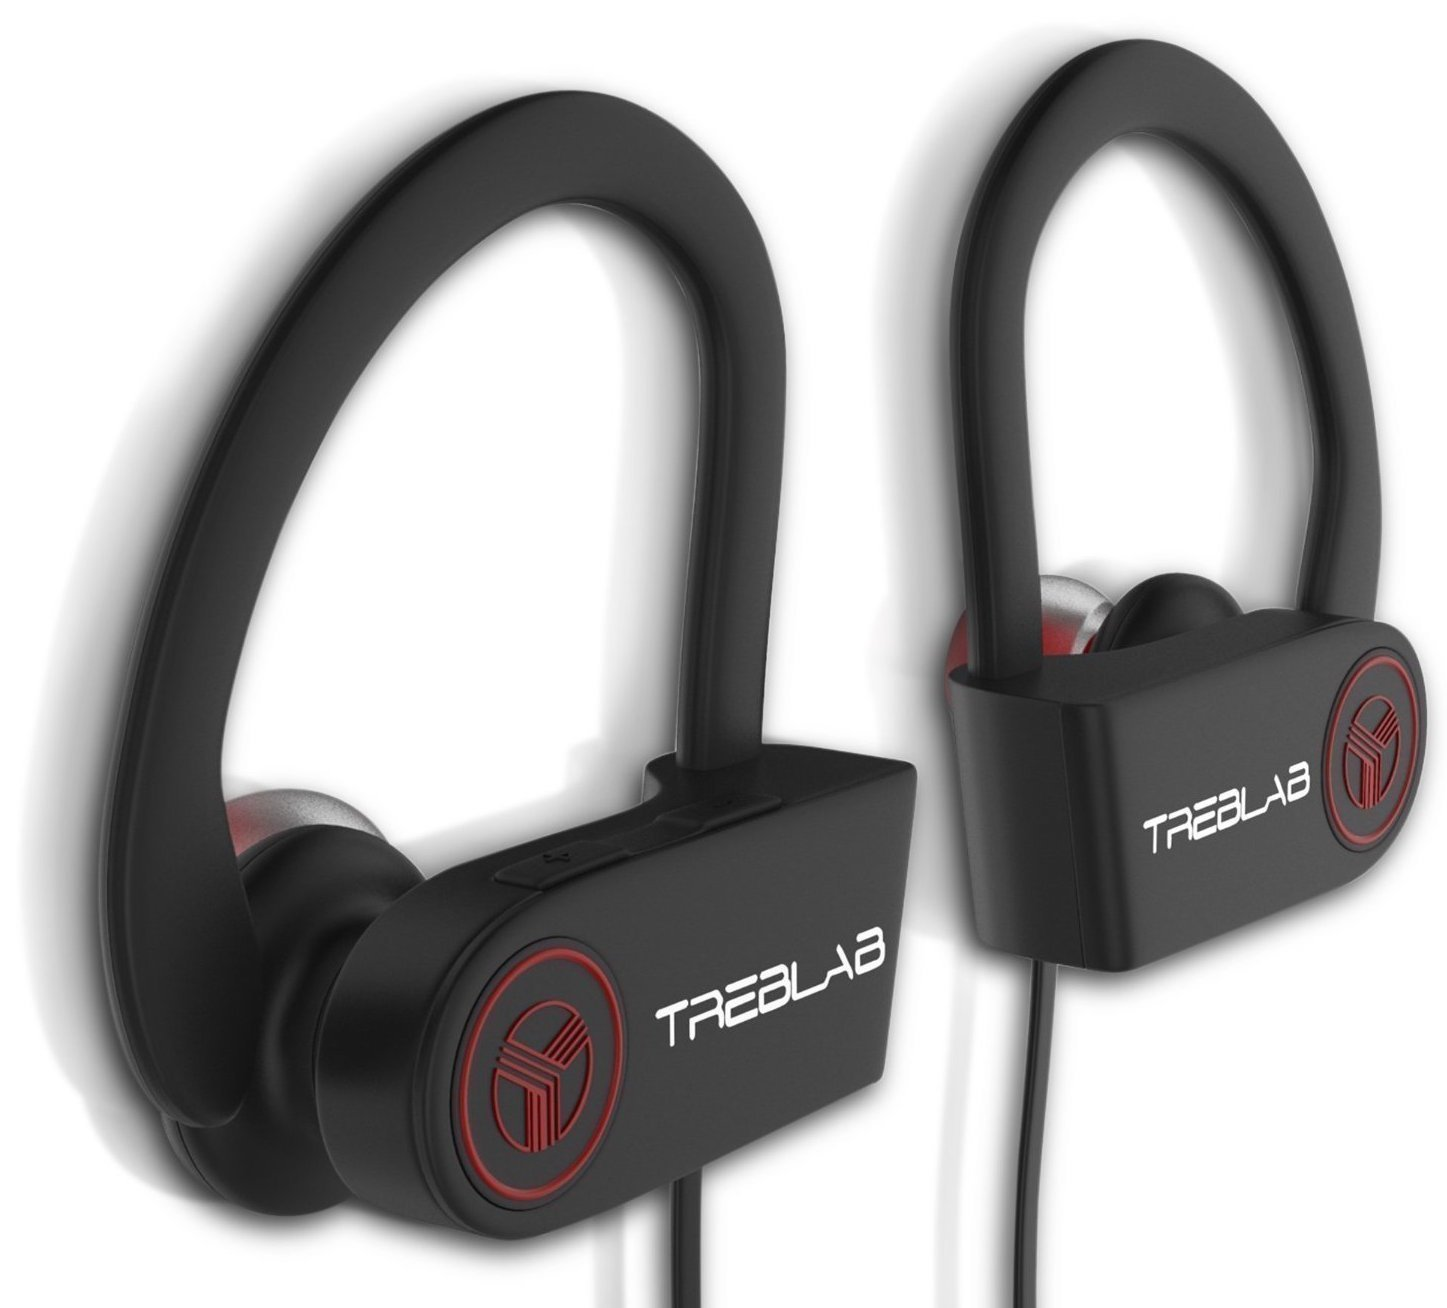 TREBLAB XR100 Bluetooth Sports Headphones, Best Wireless Earbuds For Running or Workout, Noise Cancelling Sweatproof Cordless Headset For Gym, True HD Beats Earphones w/ Mic For Iphone Android